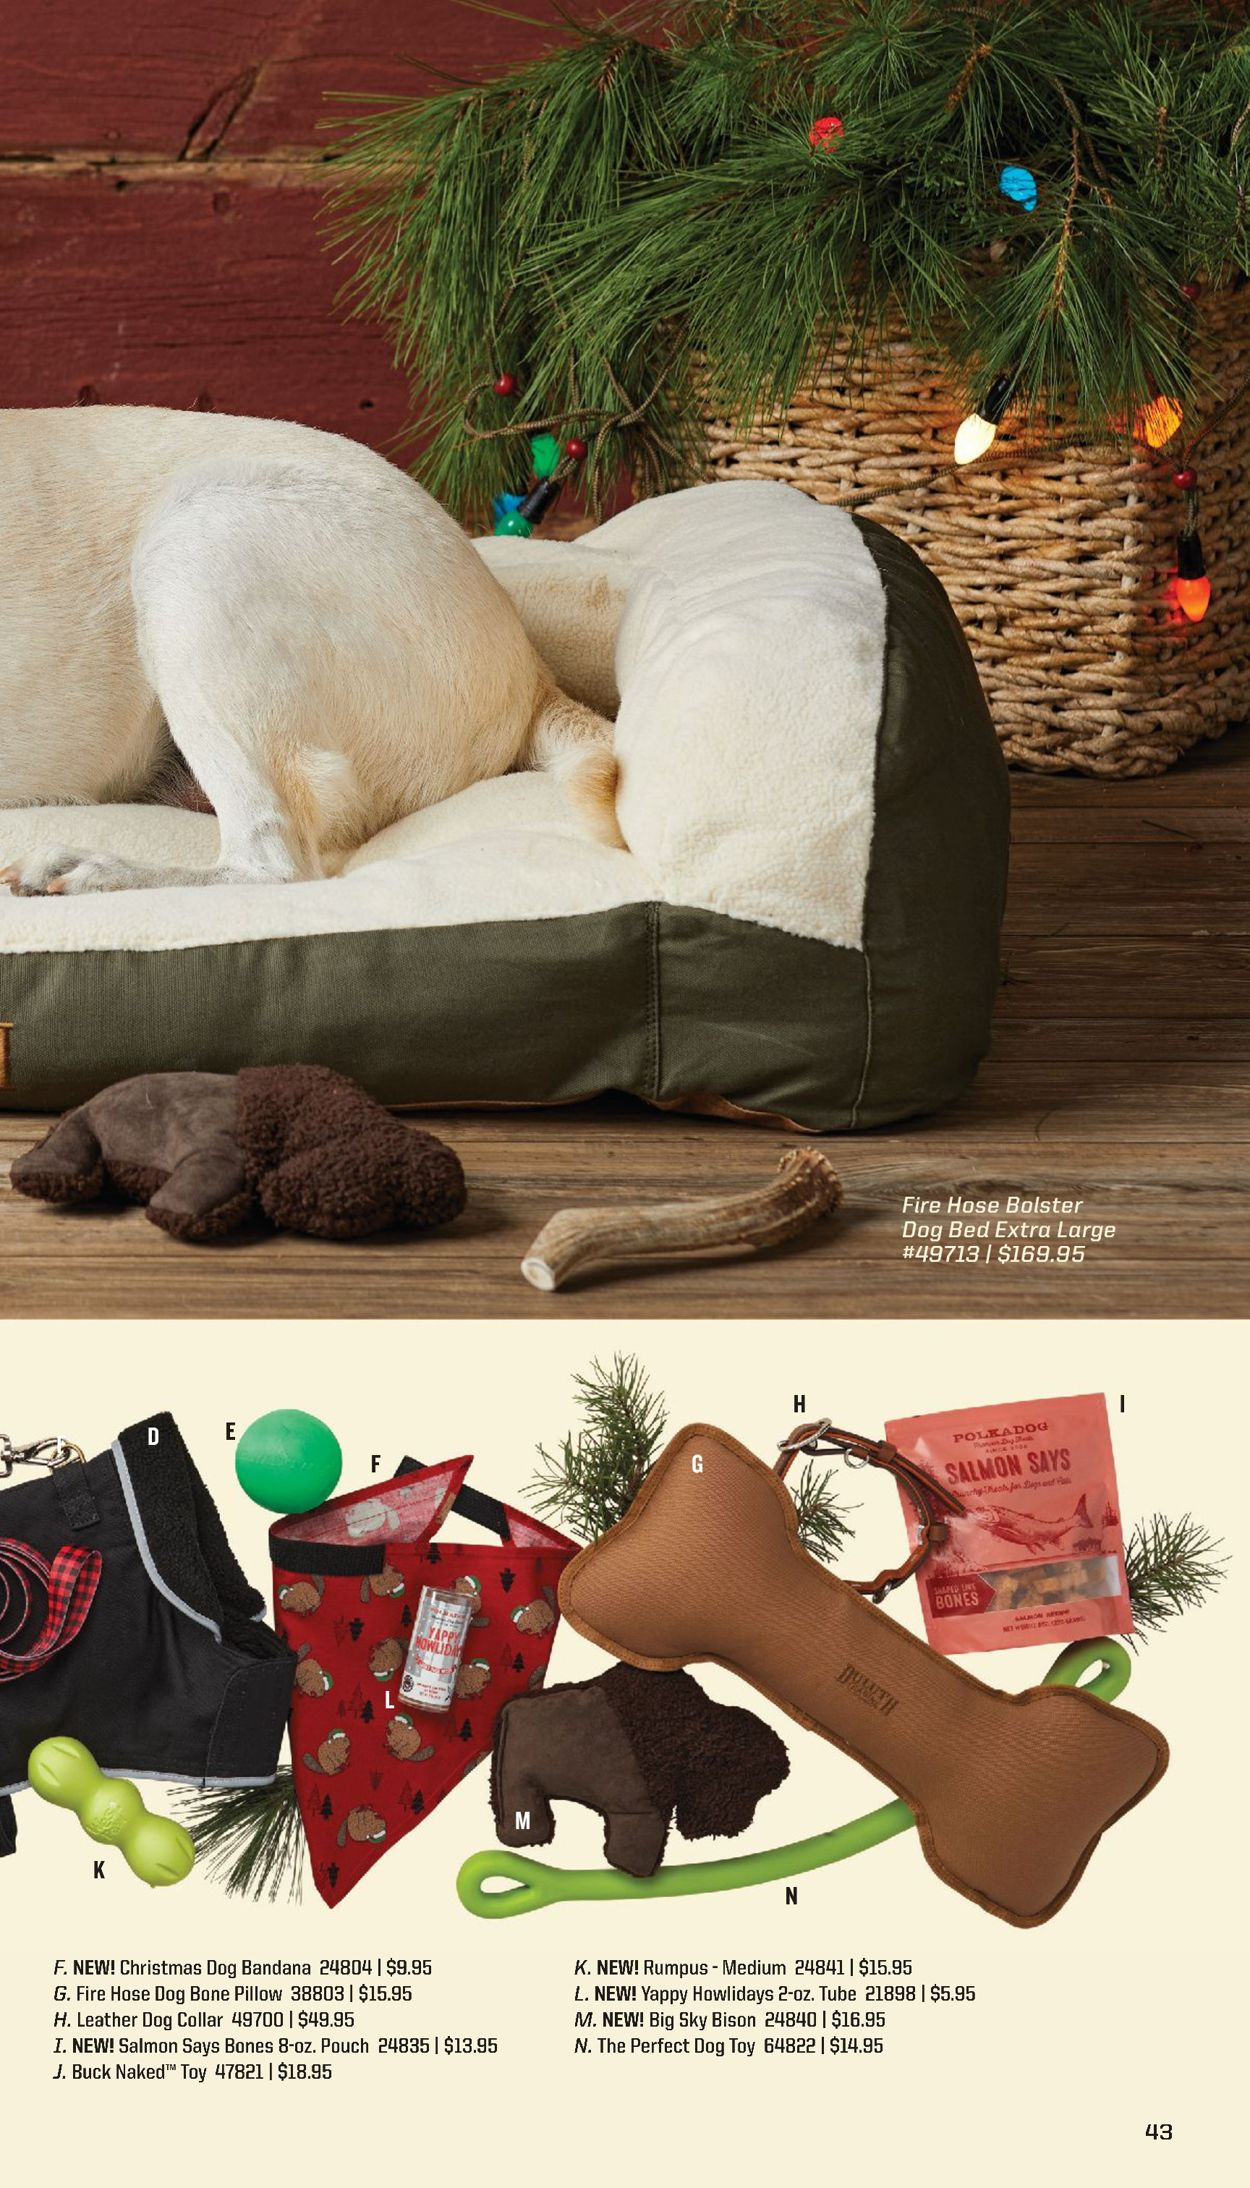 Fire Hose Dog Bed : Duluth, Trading, Christmas, Current, Weekly, 11/12, 11/16/2020, Frequent-ads.com